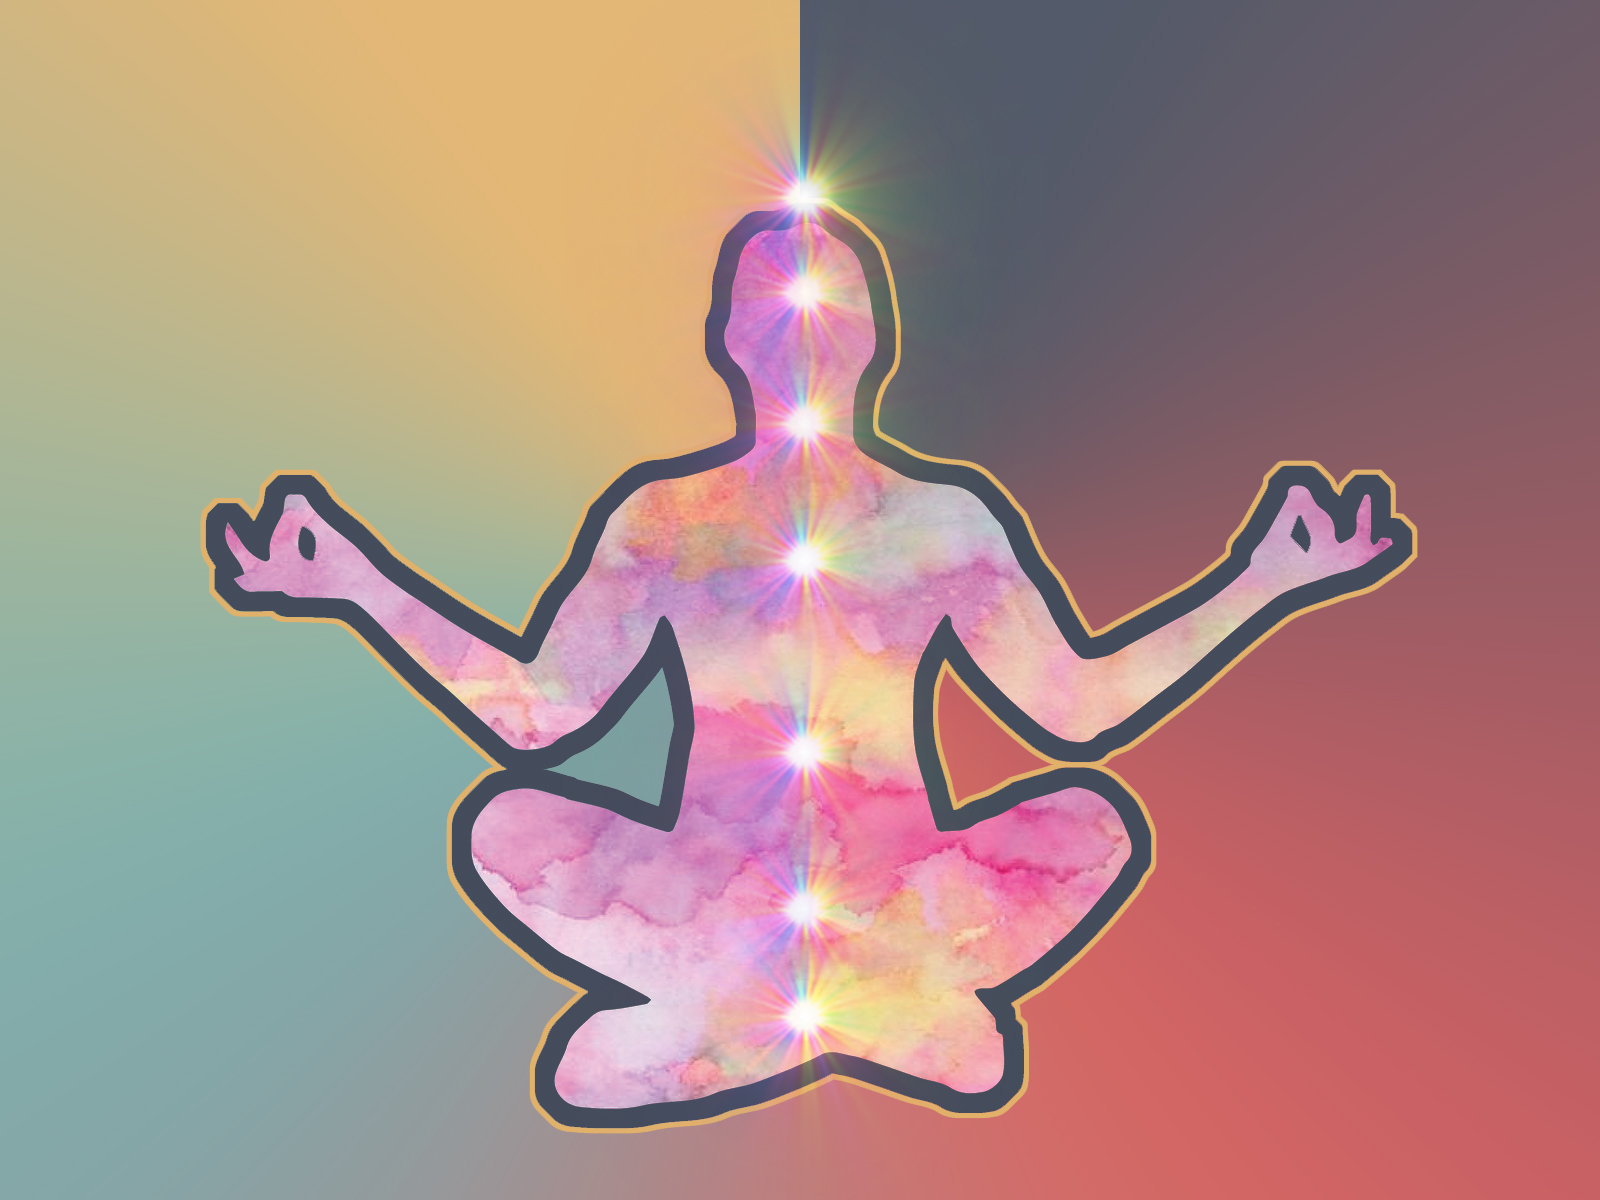 Graphic of a person meditating